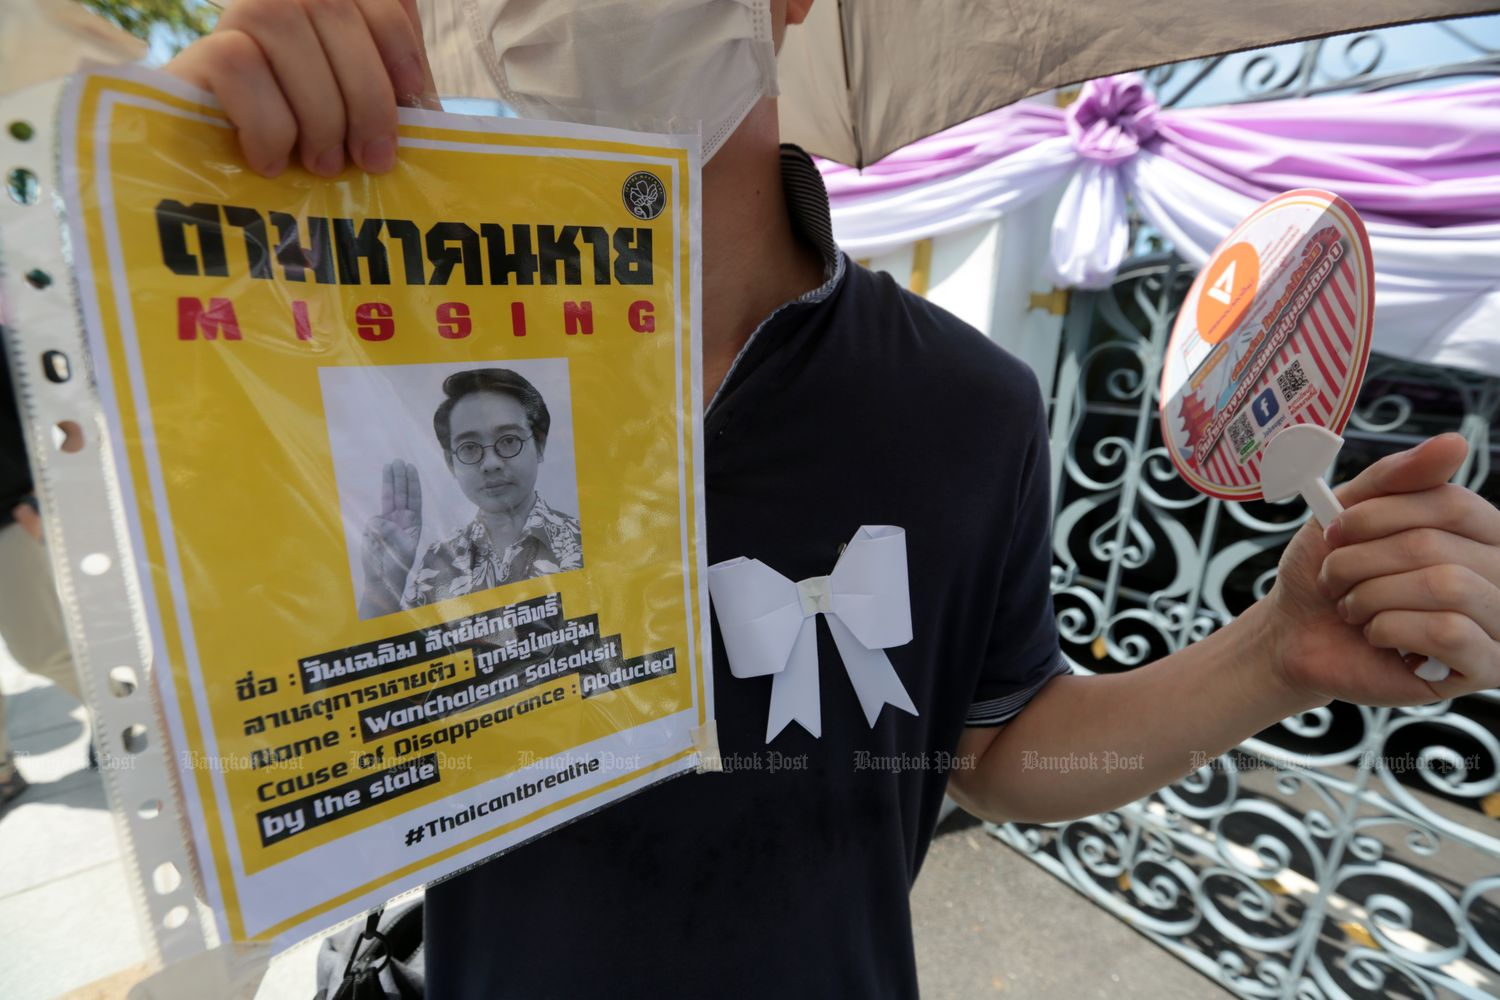 An activist holds up a picture of missing pro-democracy activist Wanchalearm Satsaksit during a 'White Bows for Justice' campaign on June 12. The self-exiled activist was kidnapped in  Phnom Penh on June 4. (Photo by Chanat Katanyu)